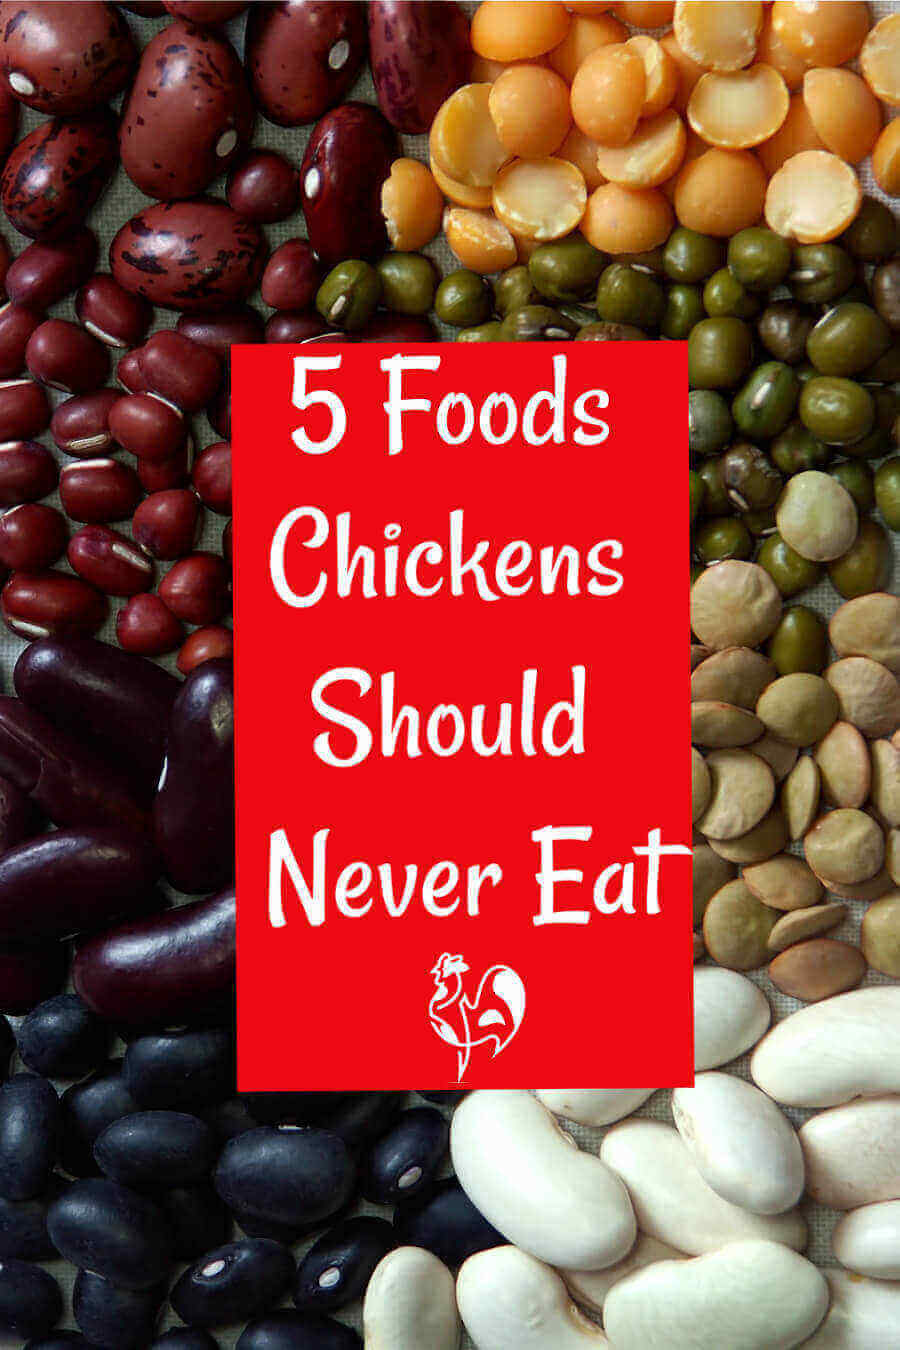 Chicken treats are all well and good, but there are some foods your girls (and boys) should NEVER eat. Find out what they are.